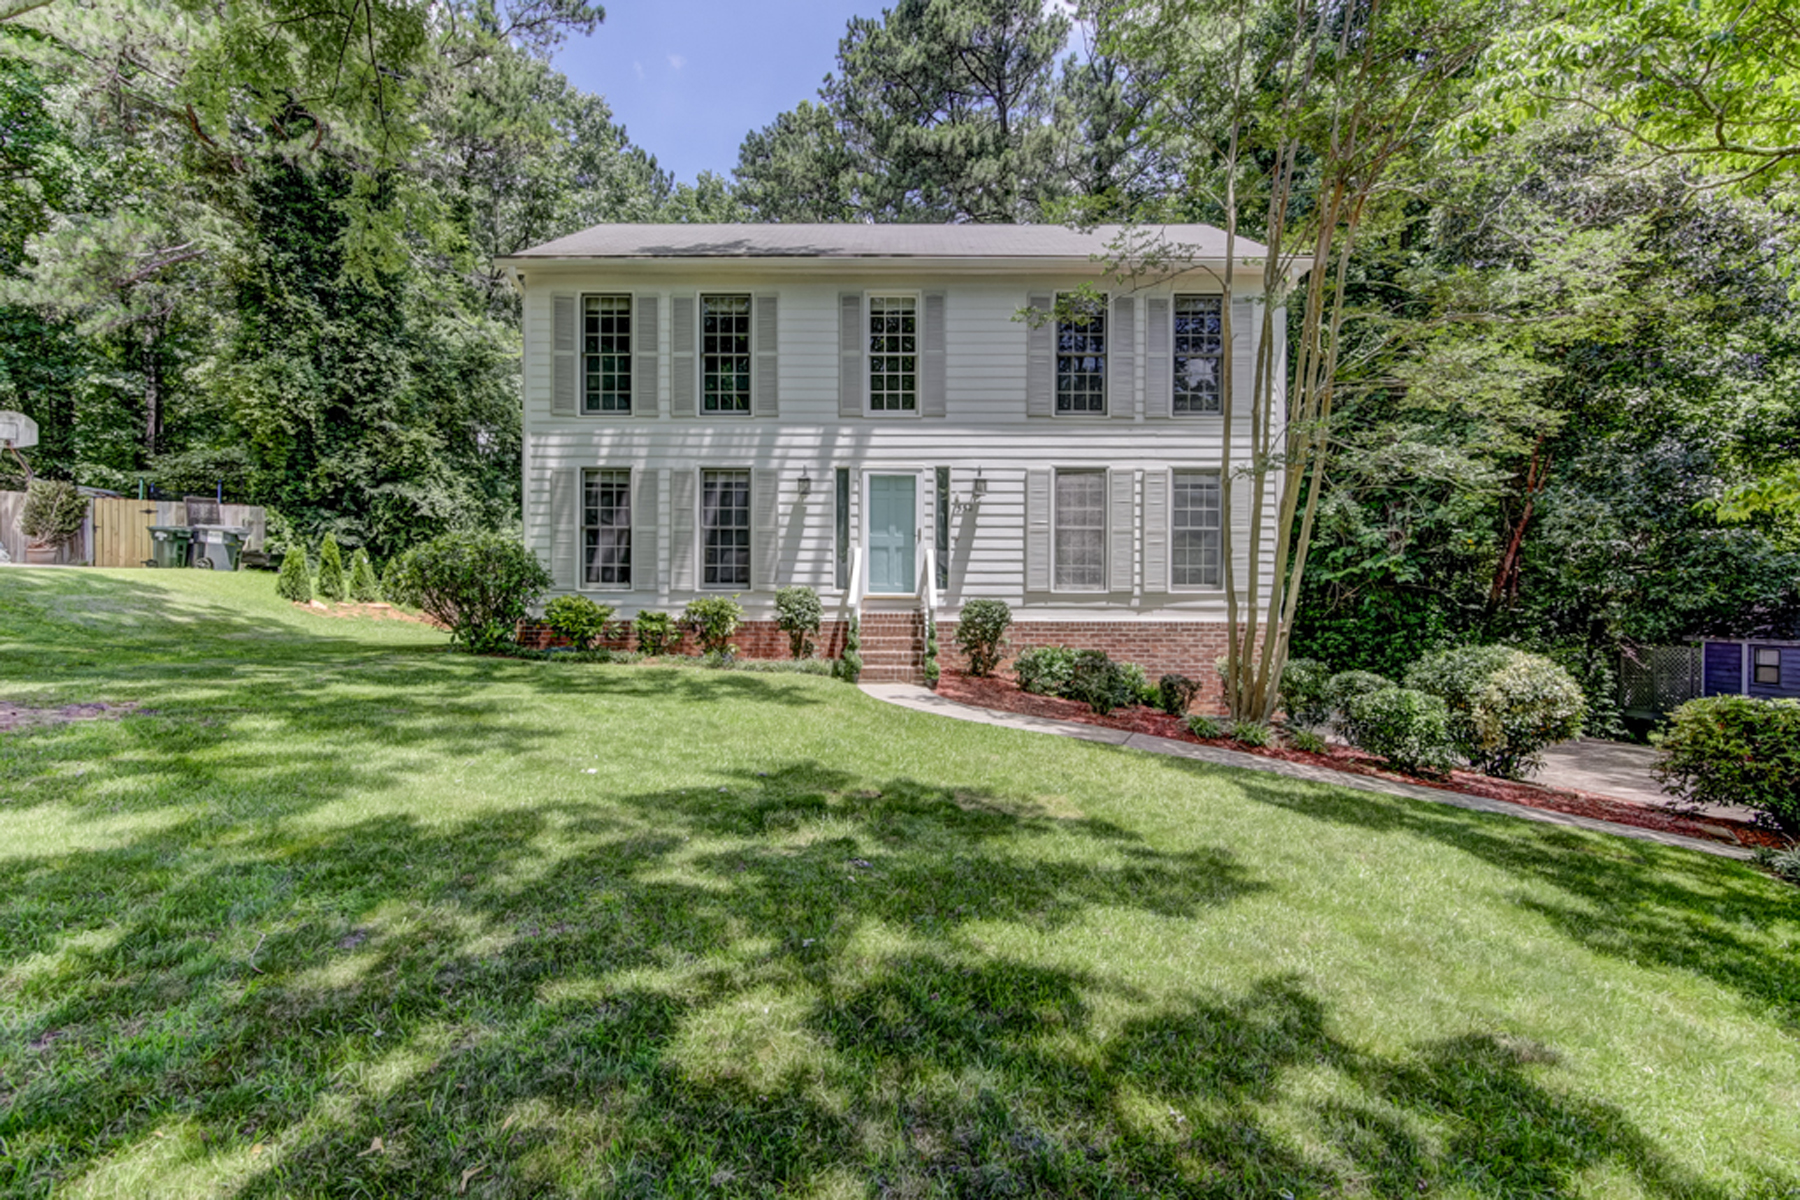 Single Family Home for Sale at Charming Traditional Home in Shannon Green 552 Shannon Green Cir Mableton, Georgia 30126 United States